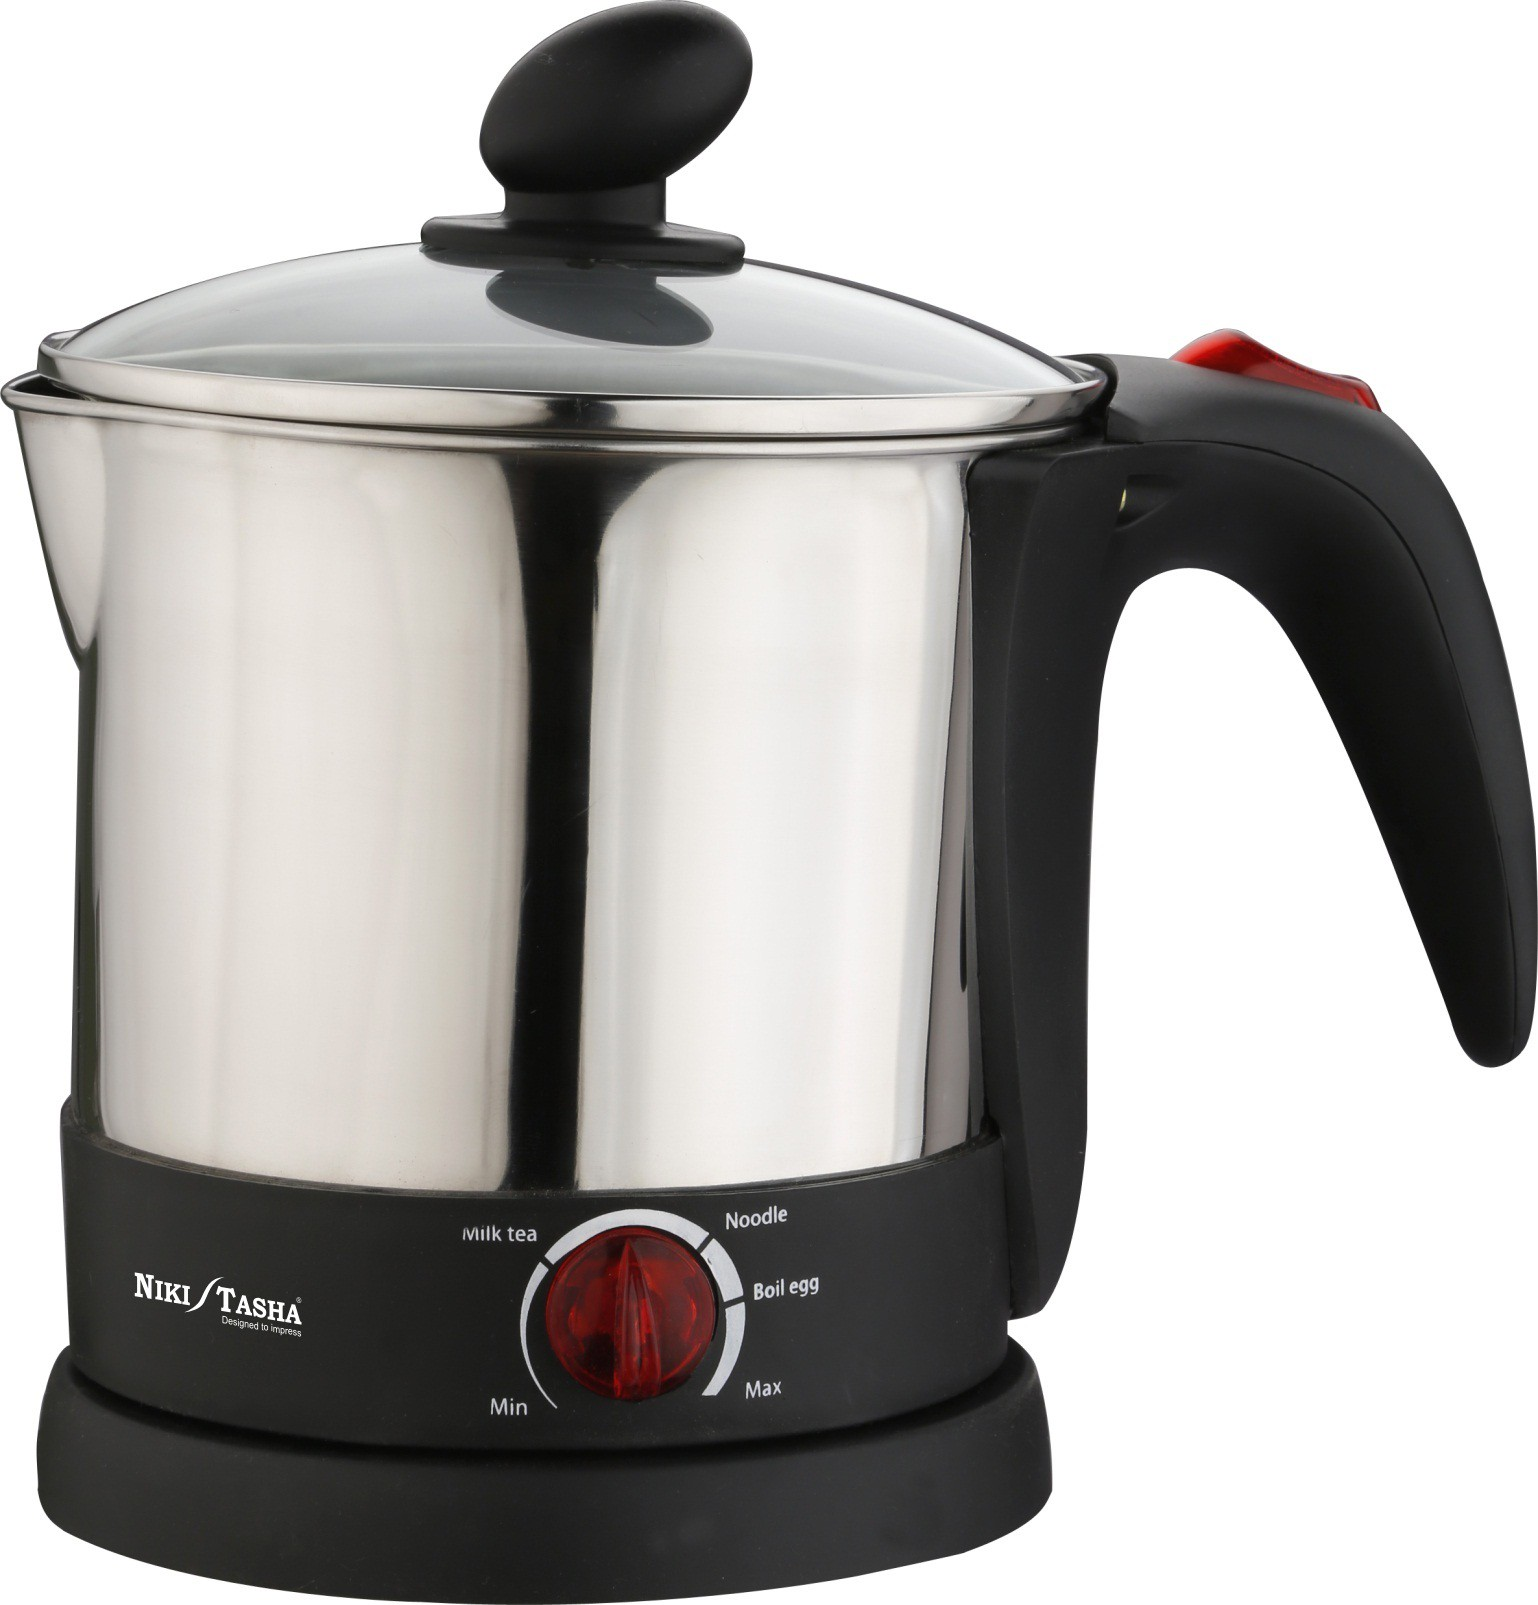 Nikitasha NSK 519 1.8 L Electric Kettle